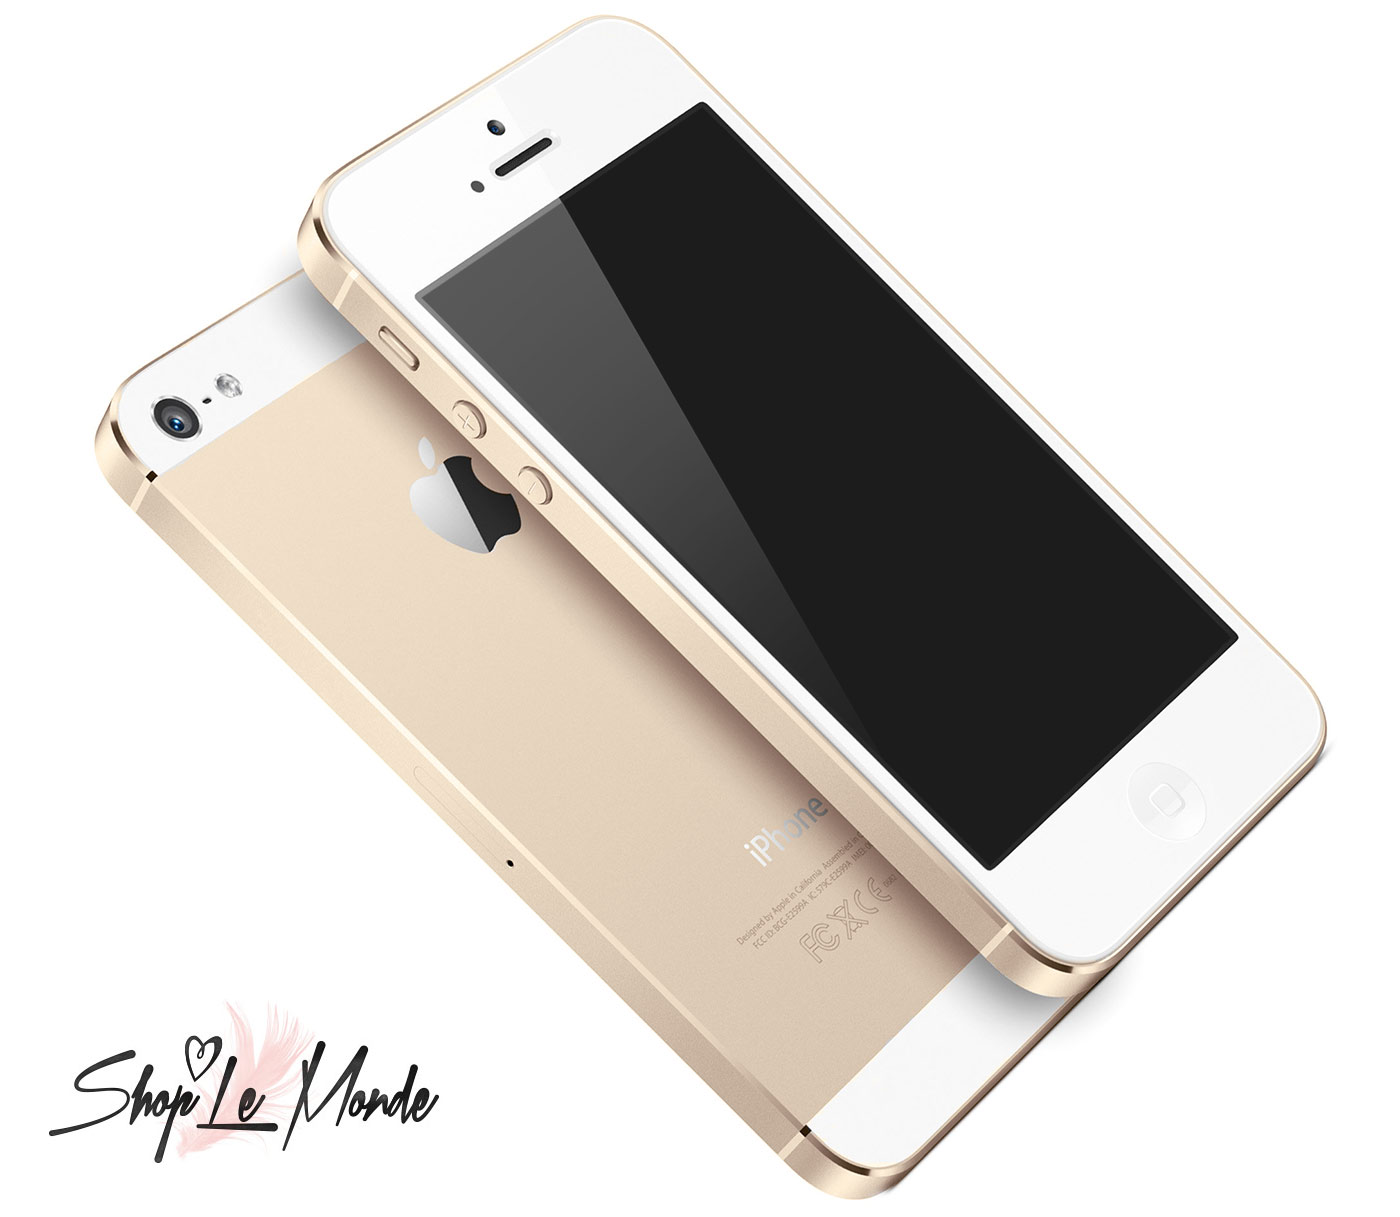 iphone-5s-champagner-gold-01